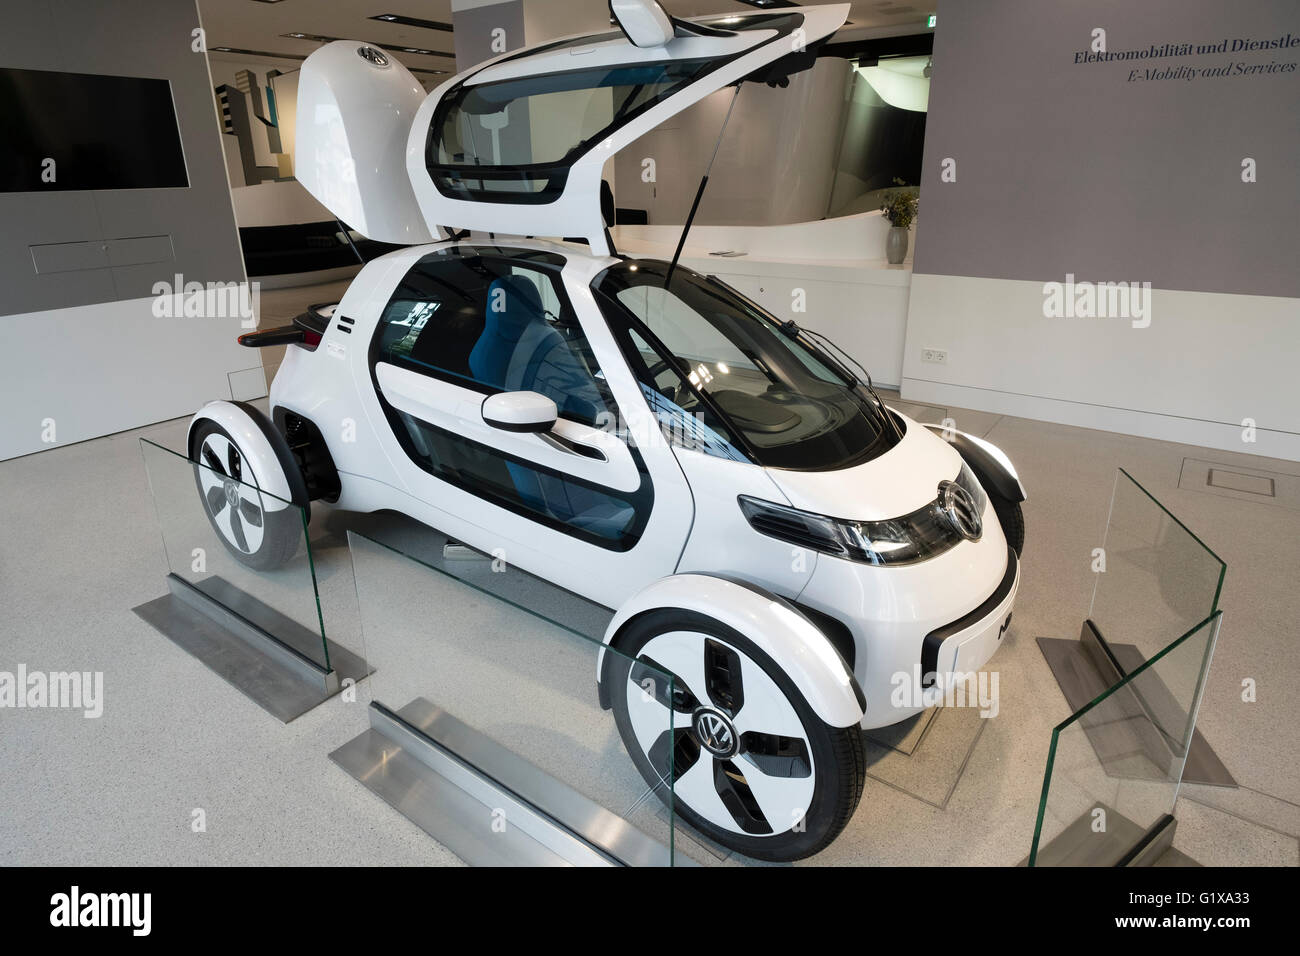 Volkswagen Nils electric concept car on display at Drive Forum showroom in Berlin Germany - Stock Image